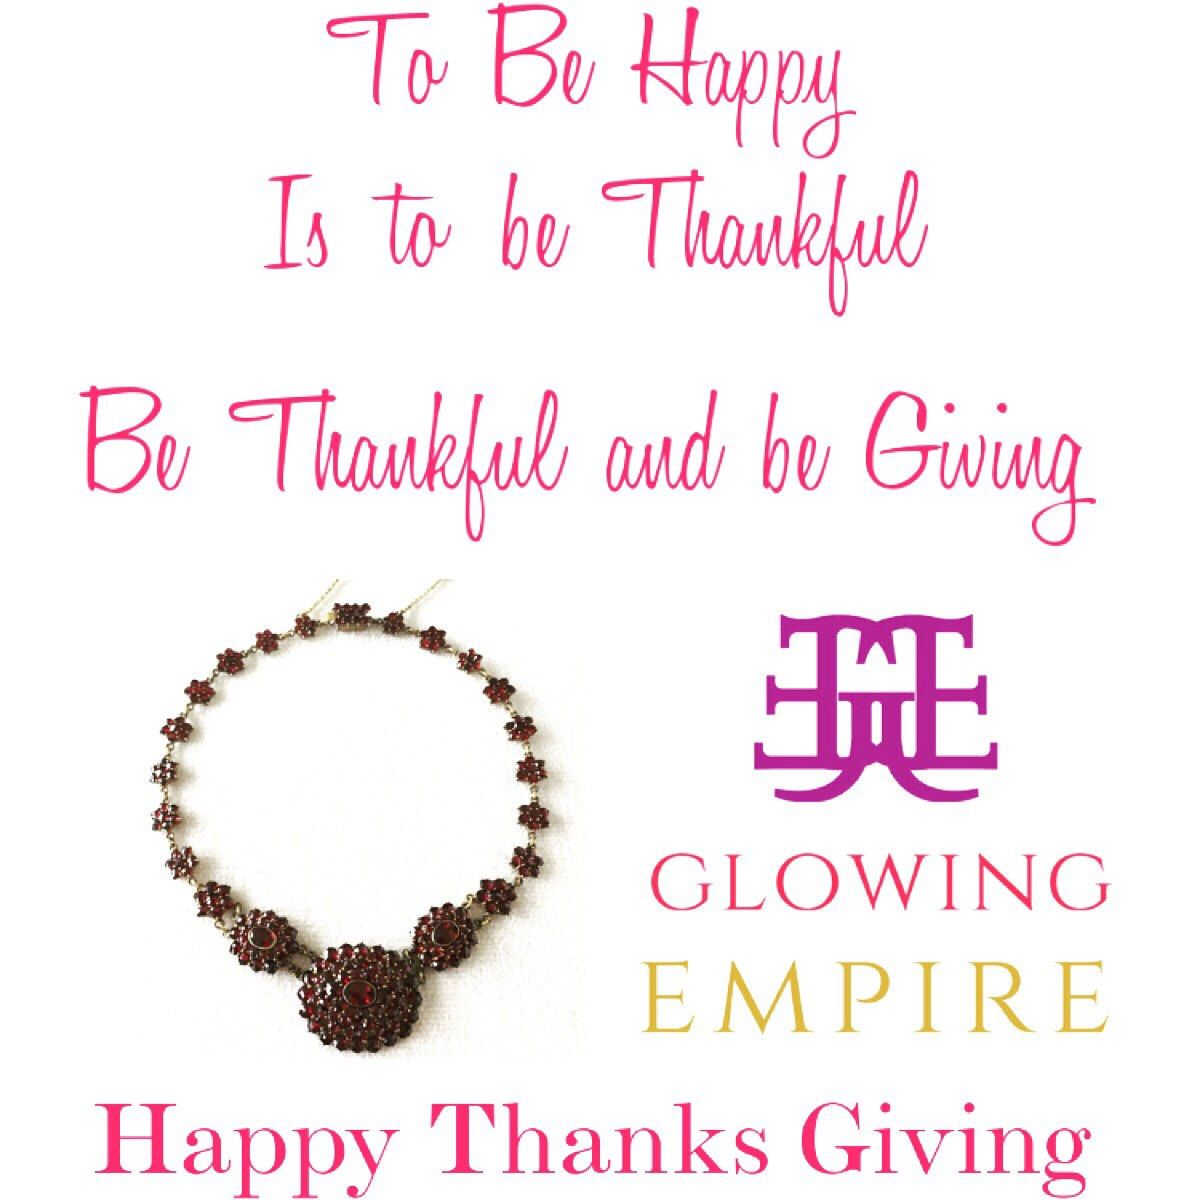 Happy thanks giving save 25 off with coupon code